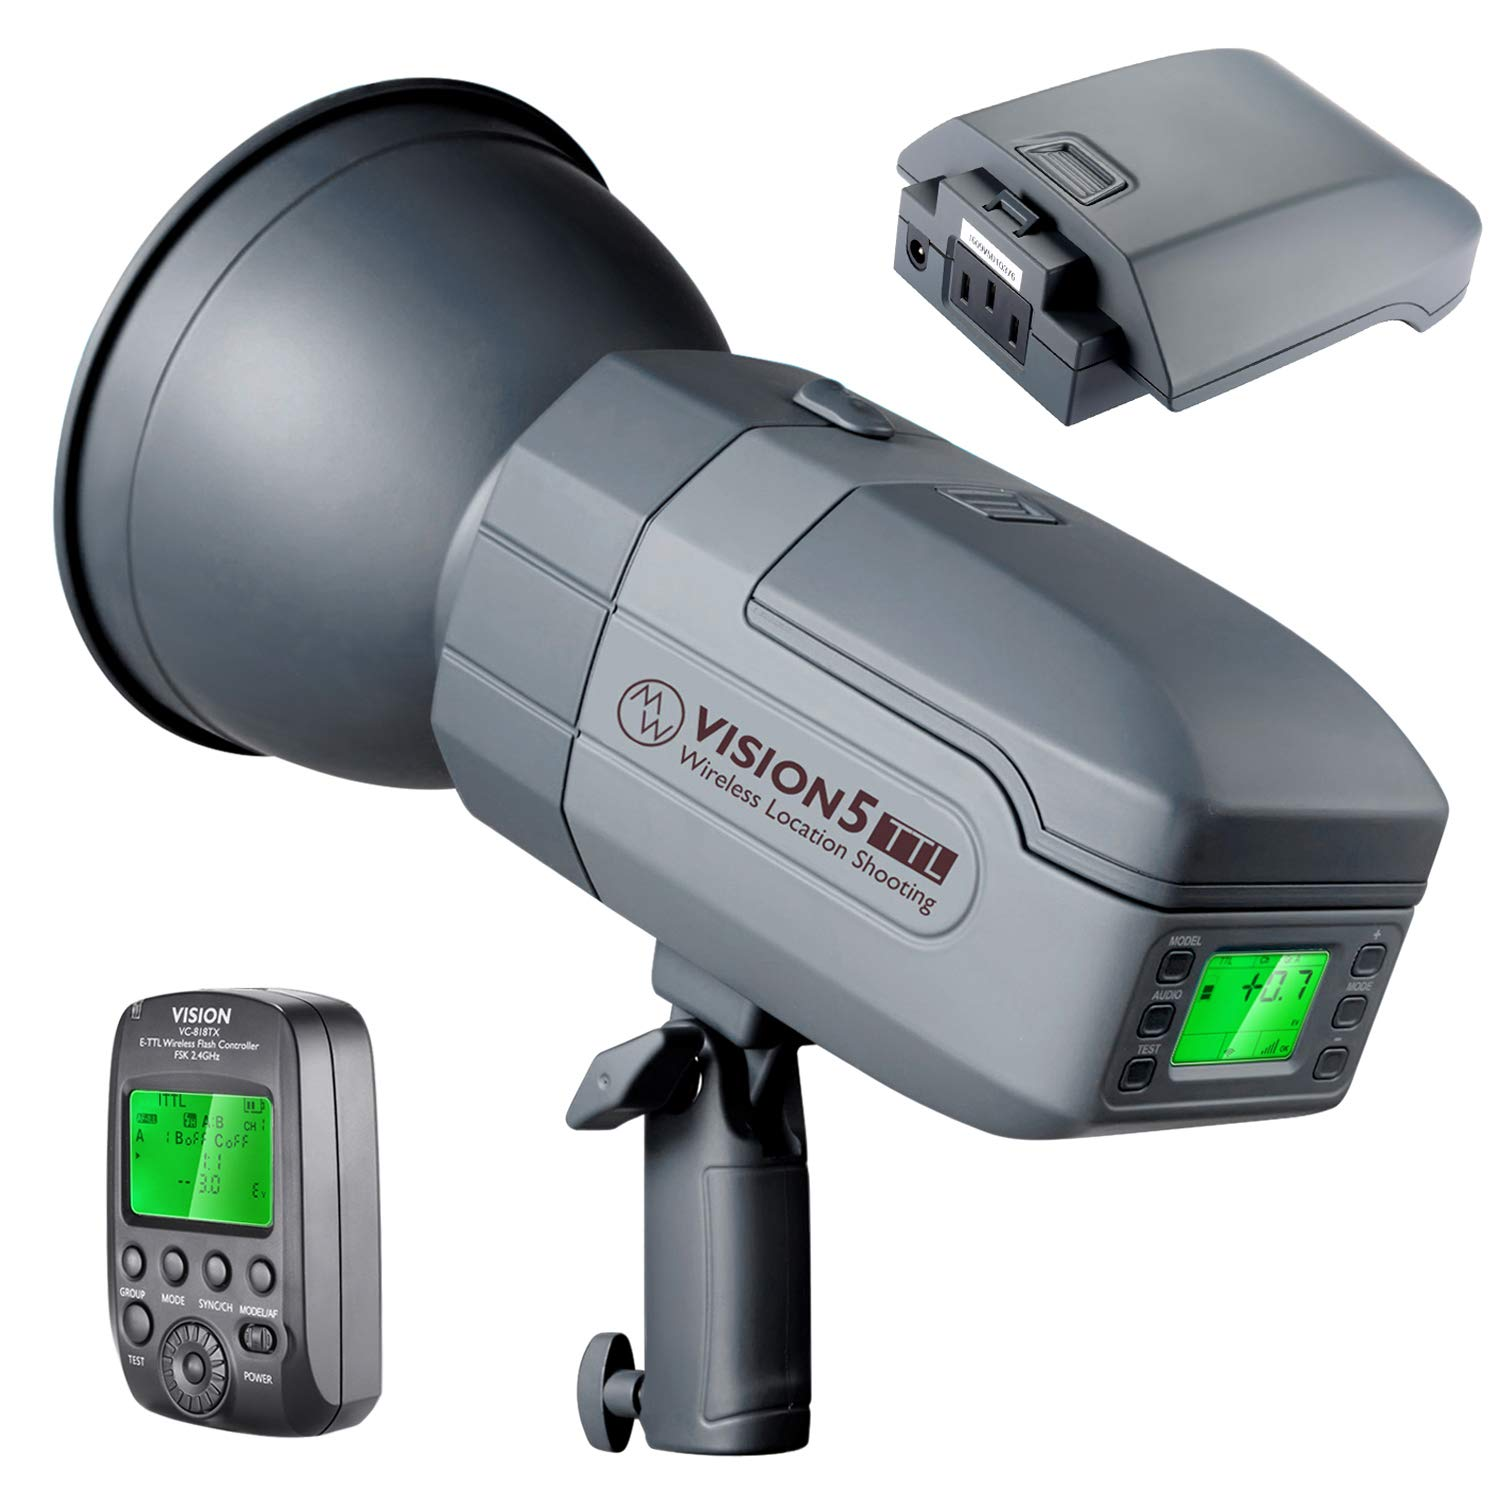 Neewer Vision5 400W TTL for NIKON HSS Outdoor Studio Flash Strobe with 2.4G System and Wireless Trigger,2 Packs Li-ion Battery(up to 500 Full Power Flashes),German Engineered,3.96 Pounds,Bowens Mount by Neewer